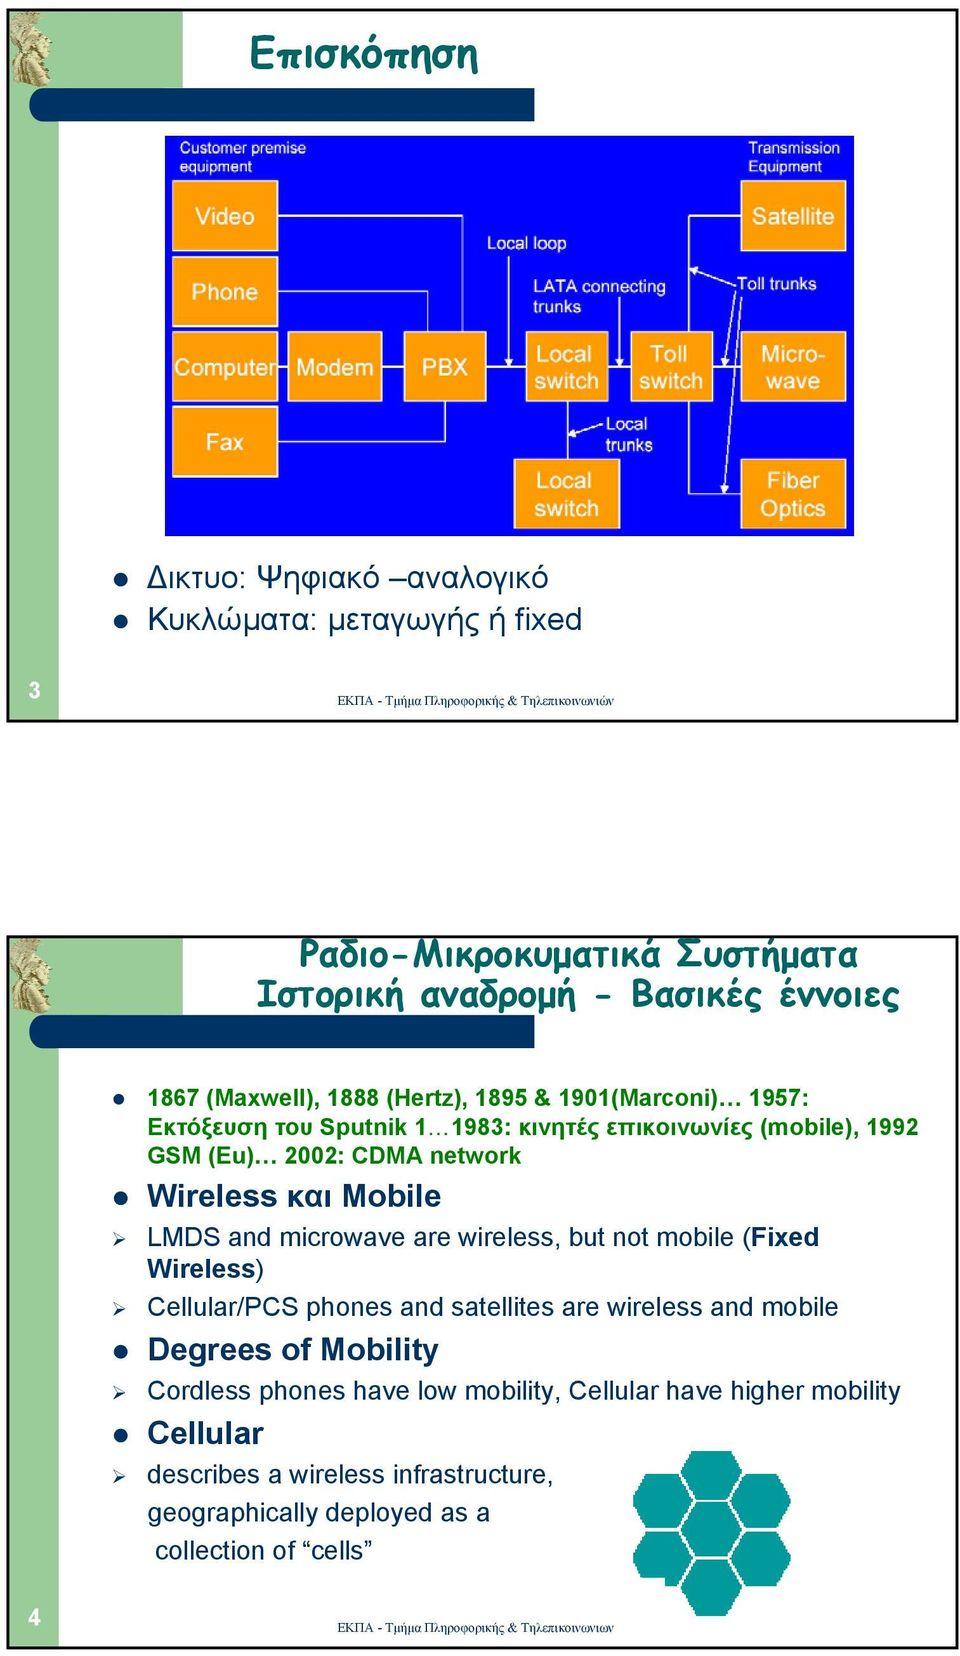 Mobile LMDS and microwave are wireless, but not mobile (Fixed Wireless) Cellular/PCS phones and satellites are wireless and mobile Degrees of Mobility